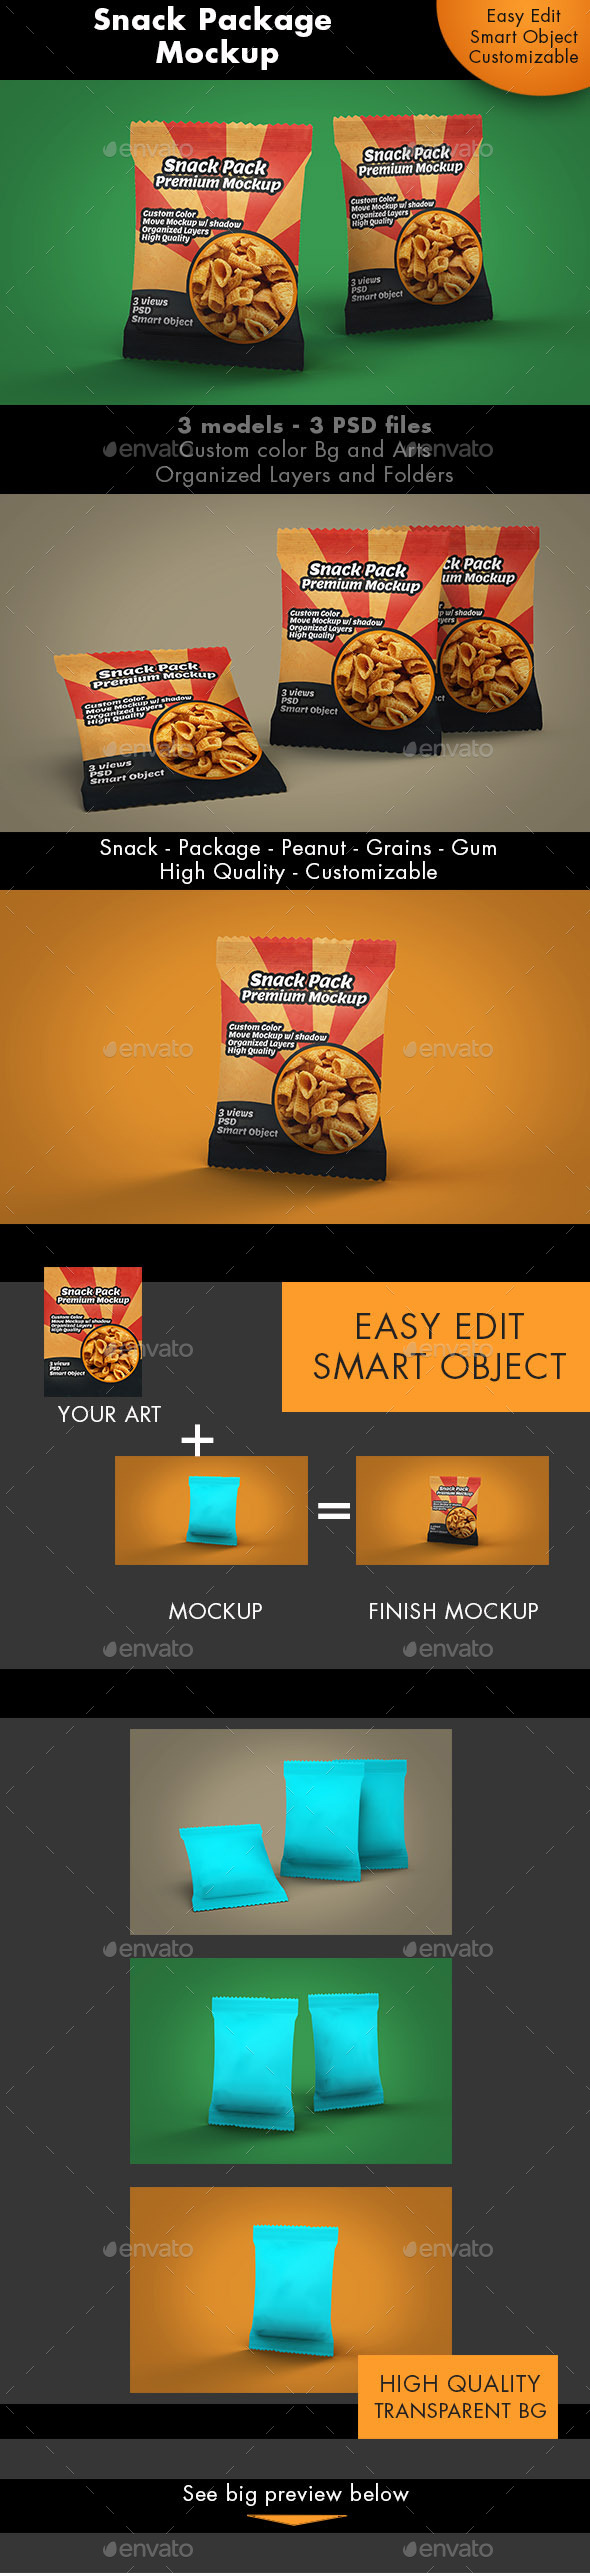 GraphicRiver Snack Package Mockup Premium 10277779